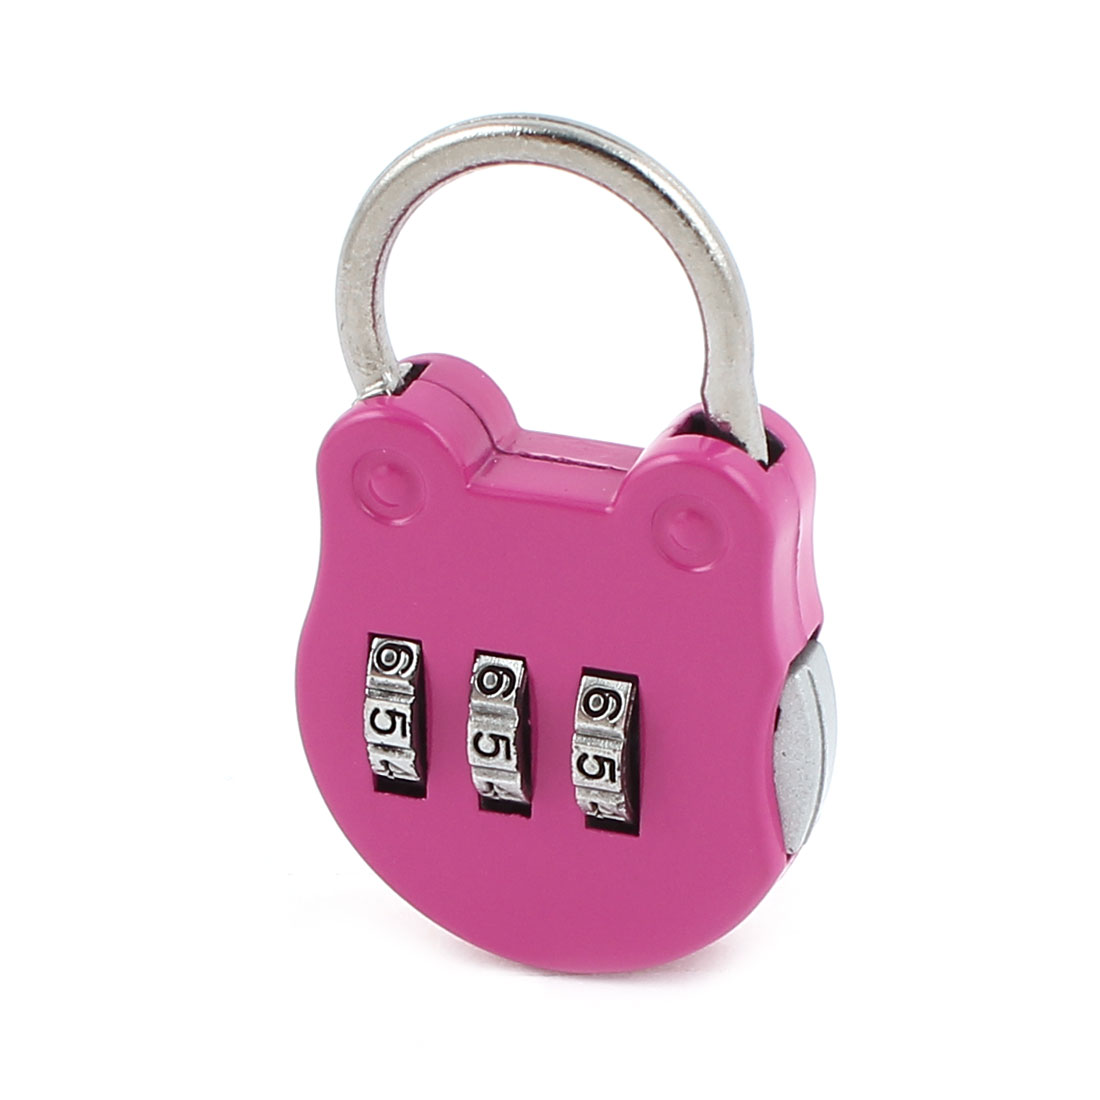 Fuchsia Cat Head Design 3 Digits Security Password Combination Travel Padlock